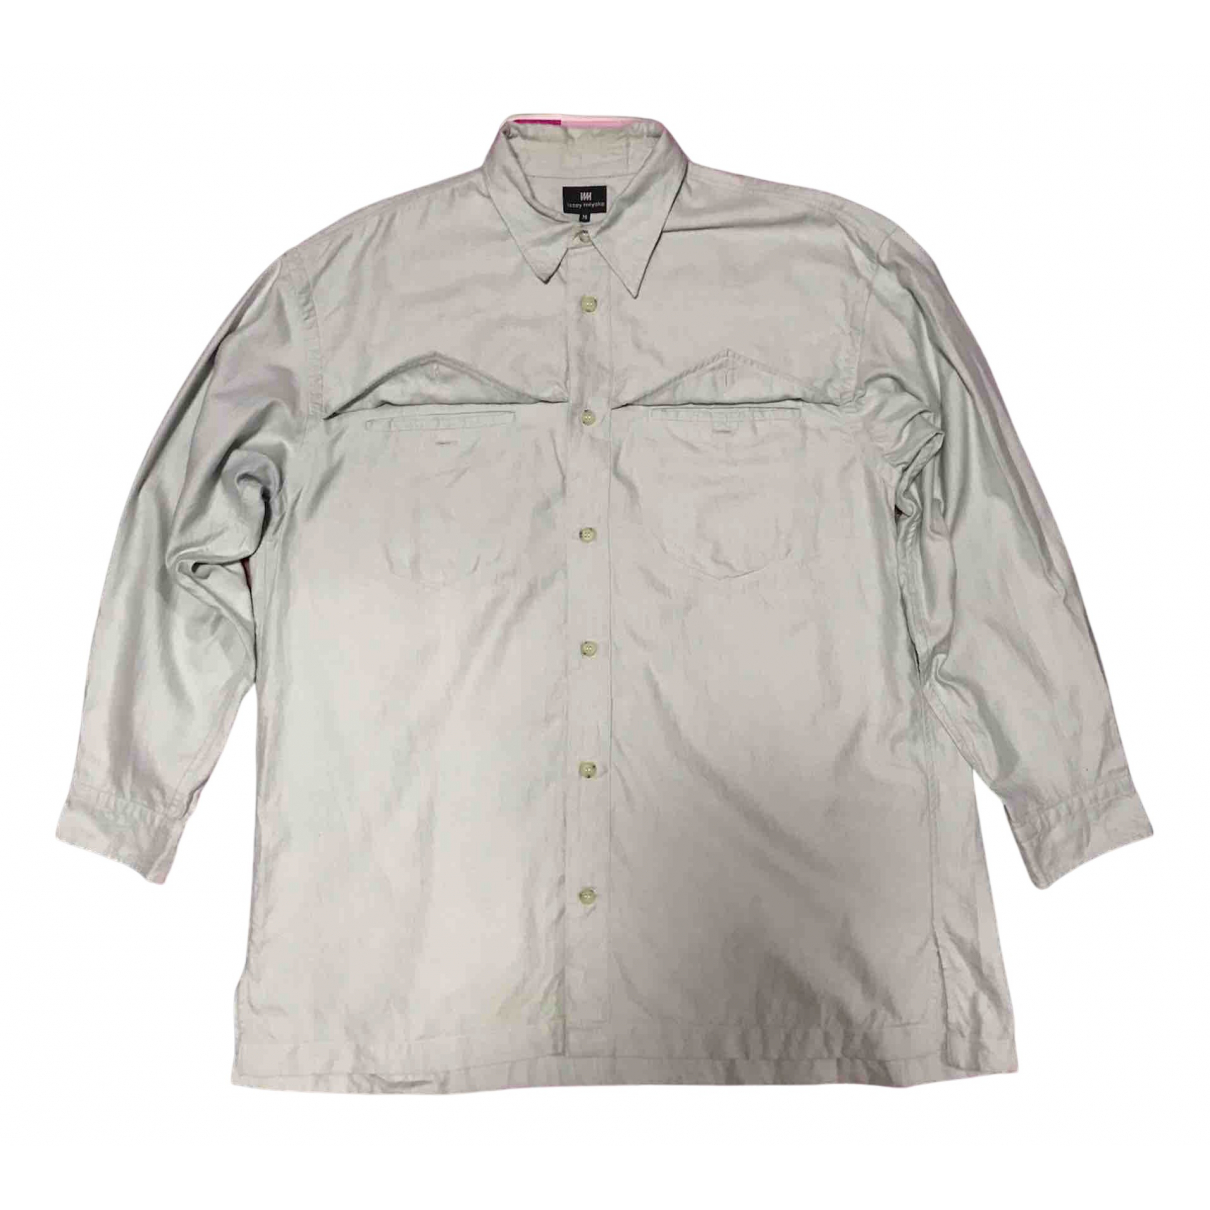 Issey Miyake - Polos   pour homme en coton - vert